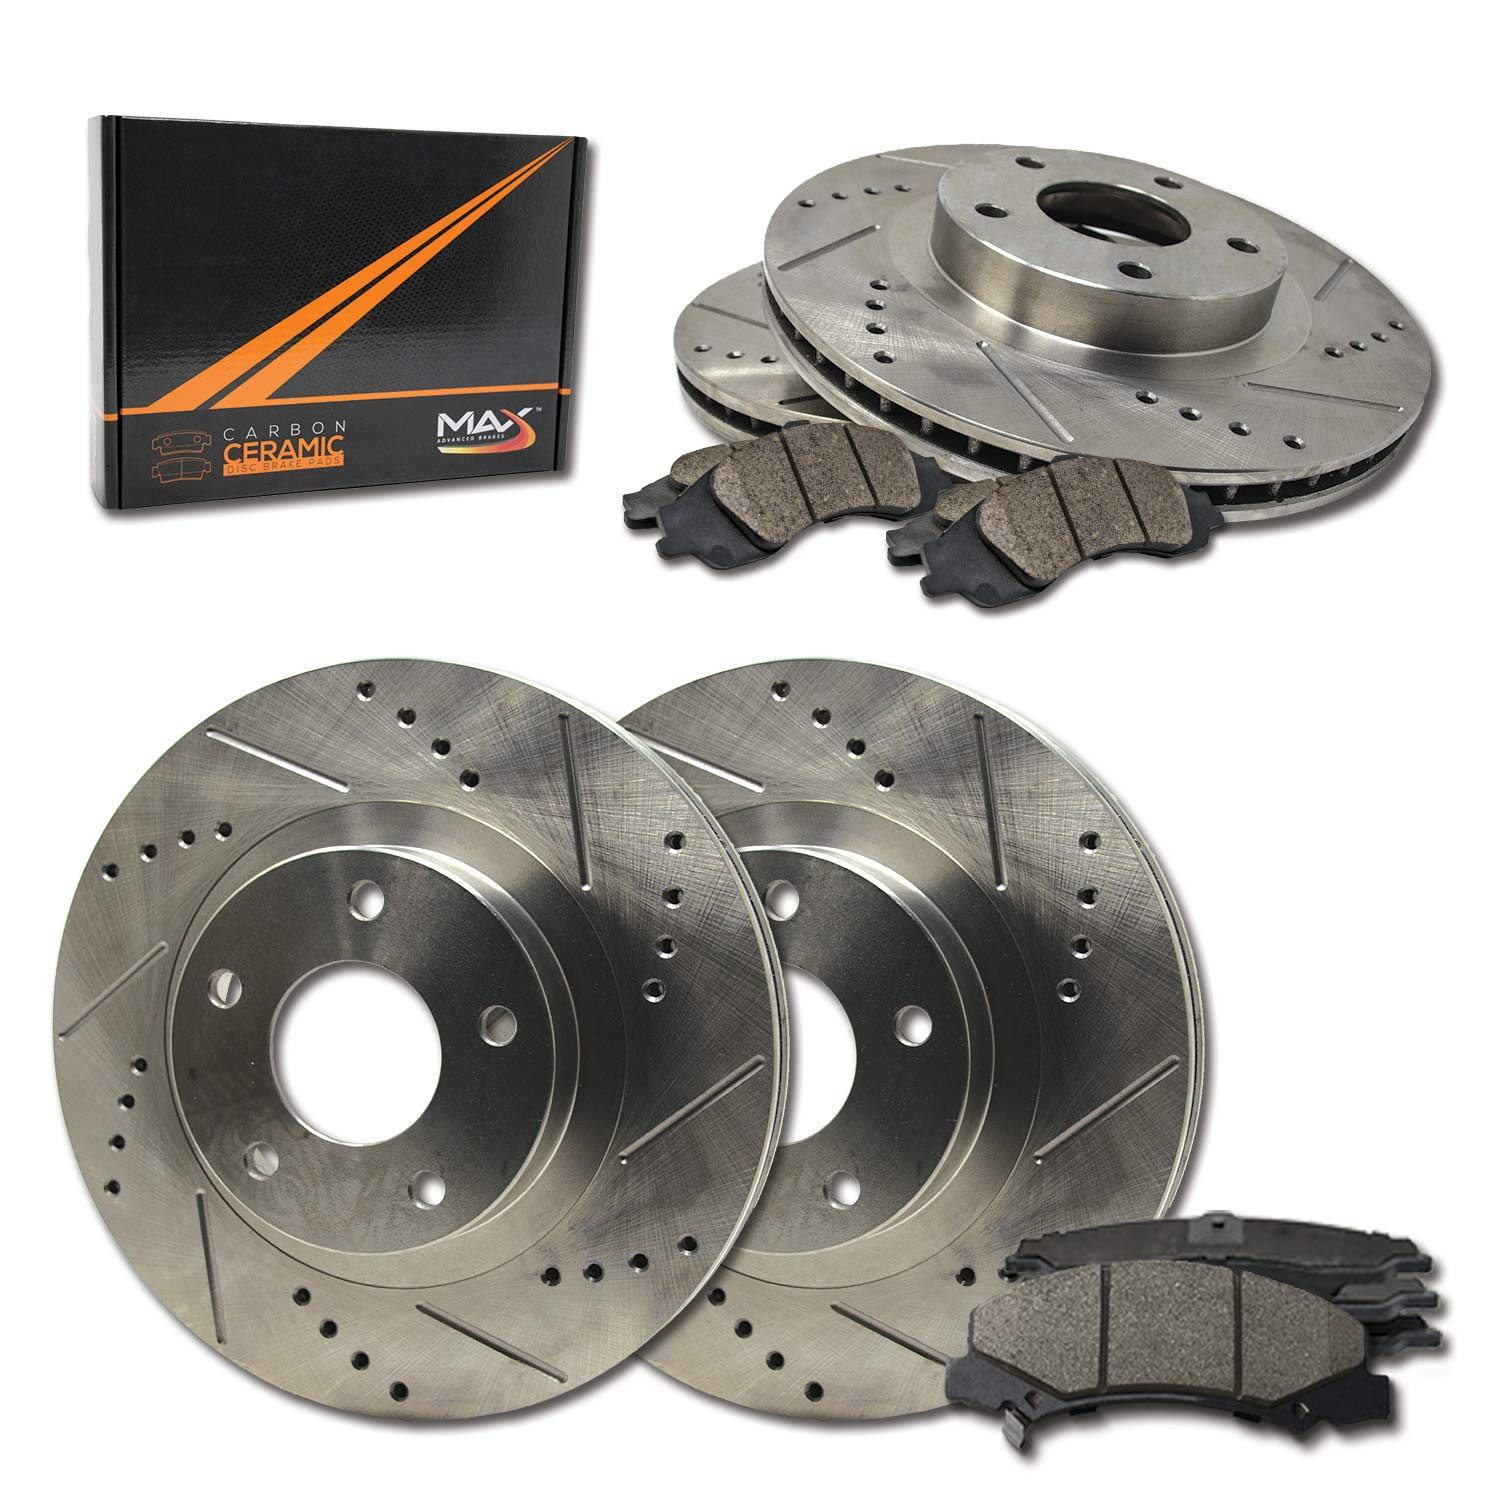 Max Brakes Front & Rear Performance Brake Kit [ Premium Slotted Drilled Rotors + Ceramic Pads ] KT069533 Fits: 2008-2012 Honda Accord EX | 2009-2014 Acura TSX by Max Advanced Brakes